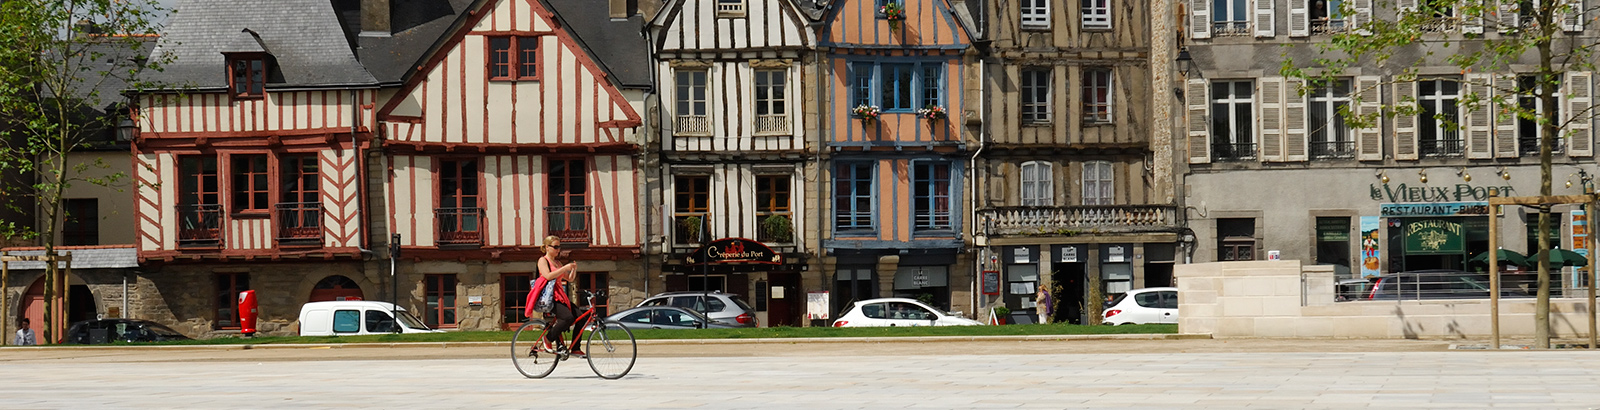 Visit the old city of Vannes